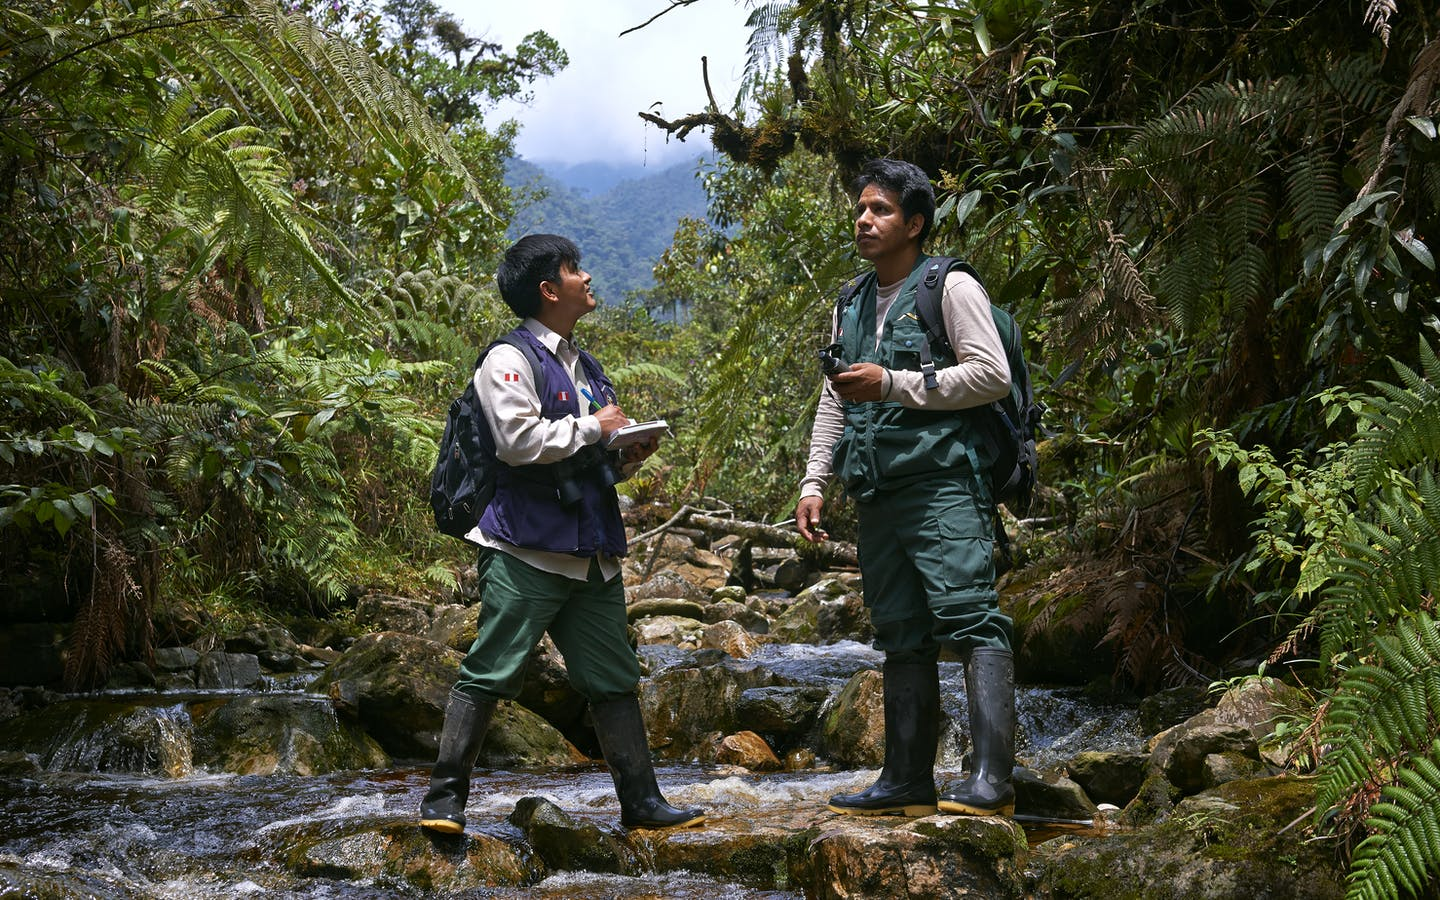 Park rangers patrolling the Alto Mayo Protected Forest